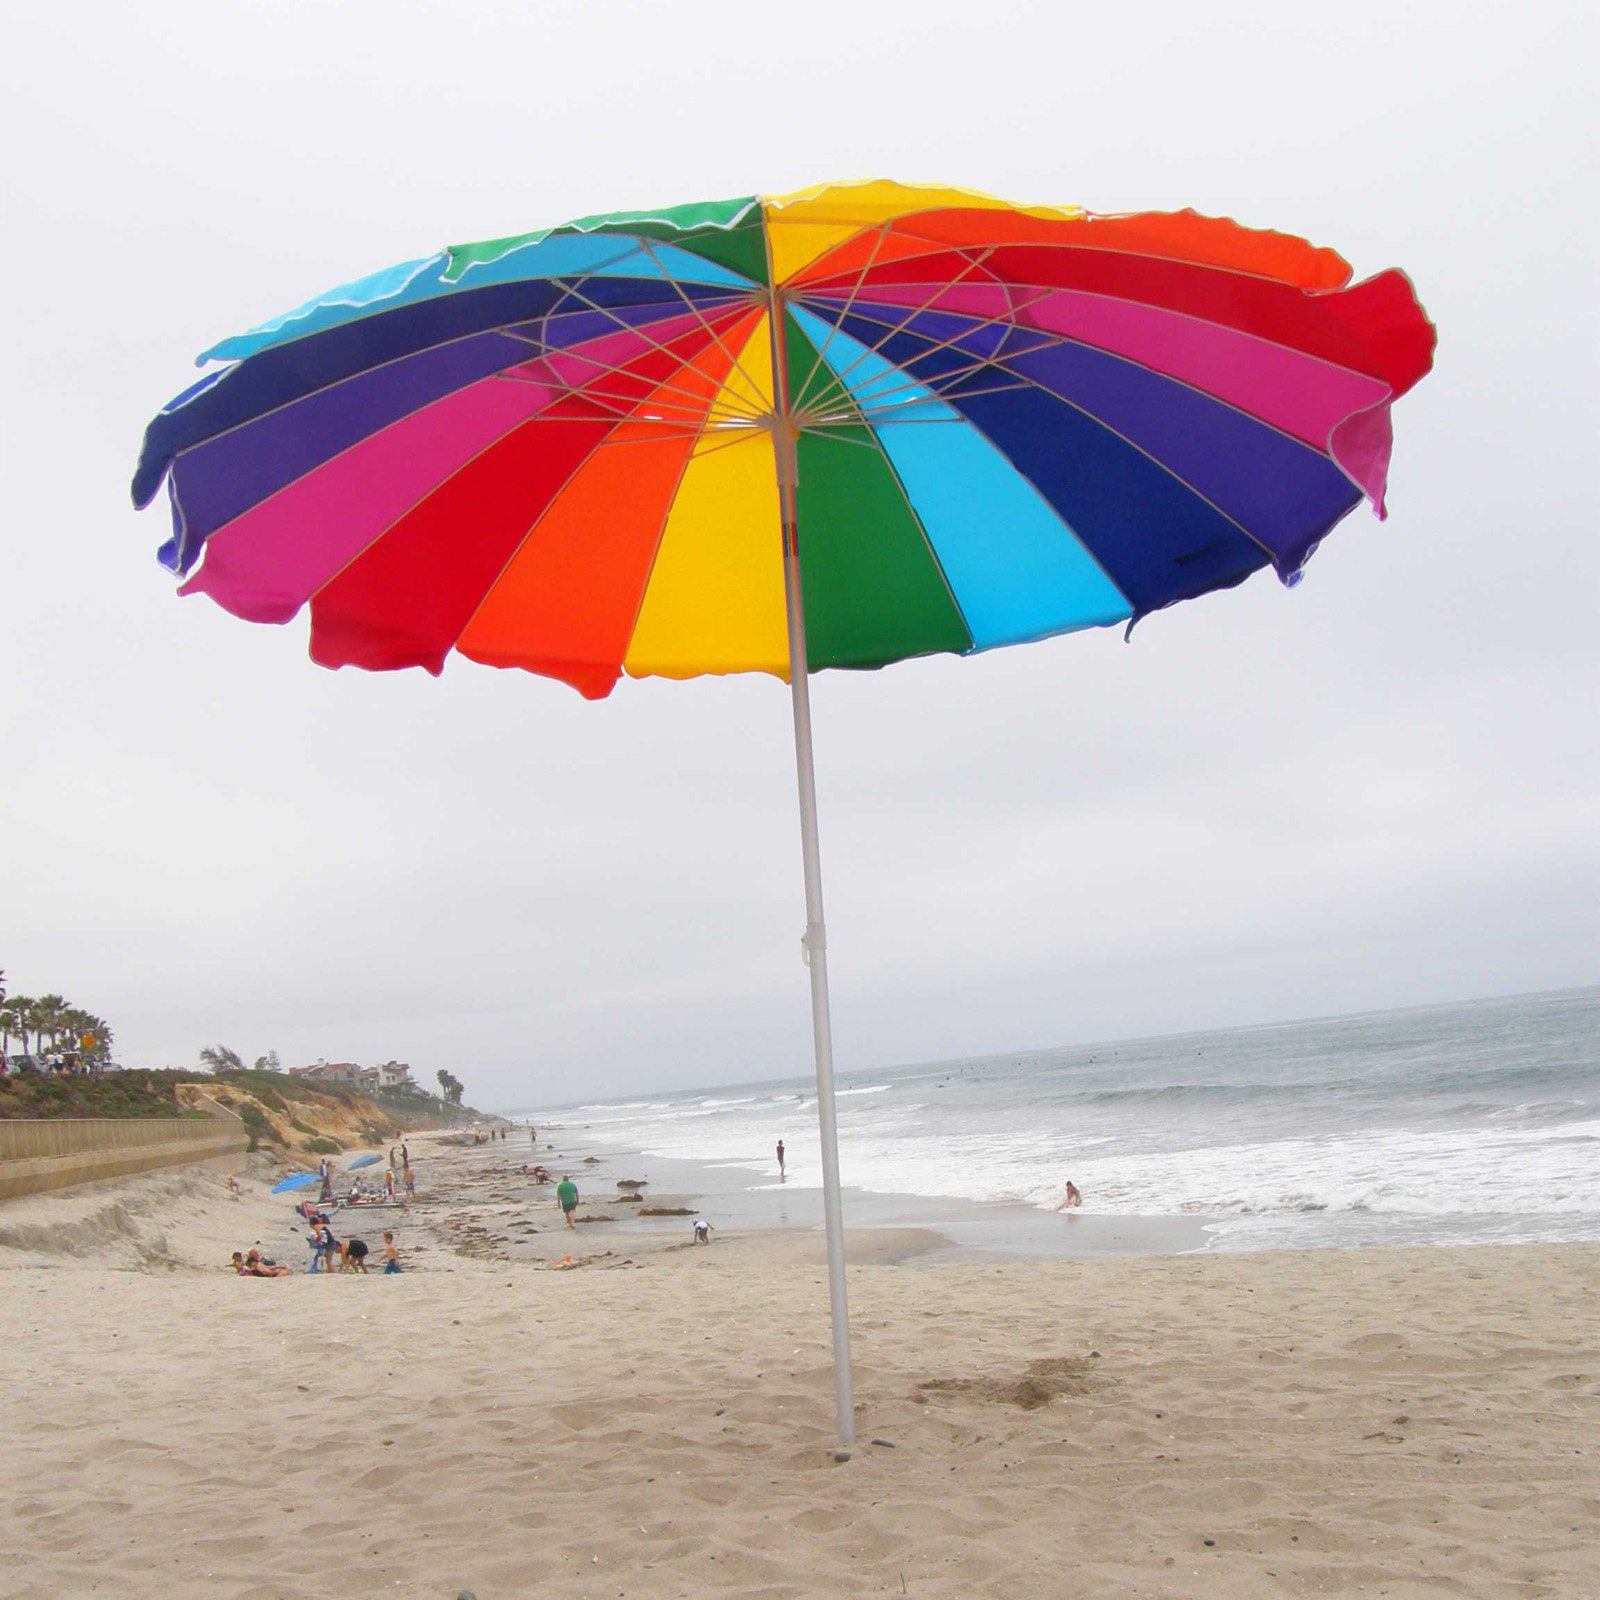 Impact Canopy 8 ft. Rainbow Beach Umbrella with Carry Bag with Sand Anchor Auger